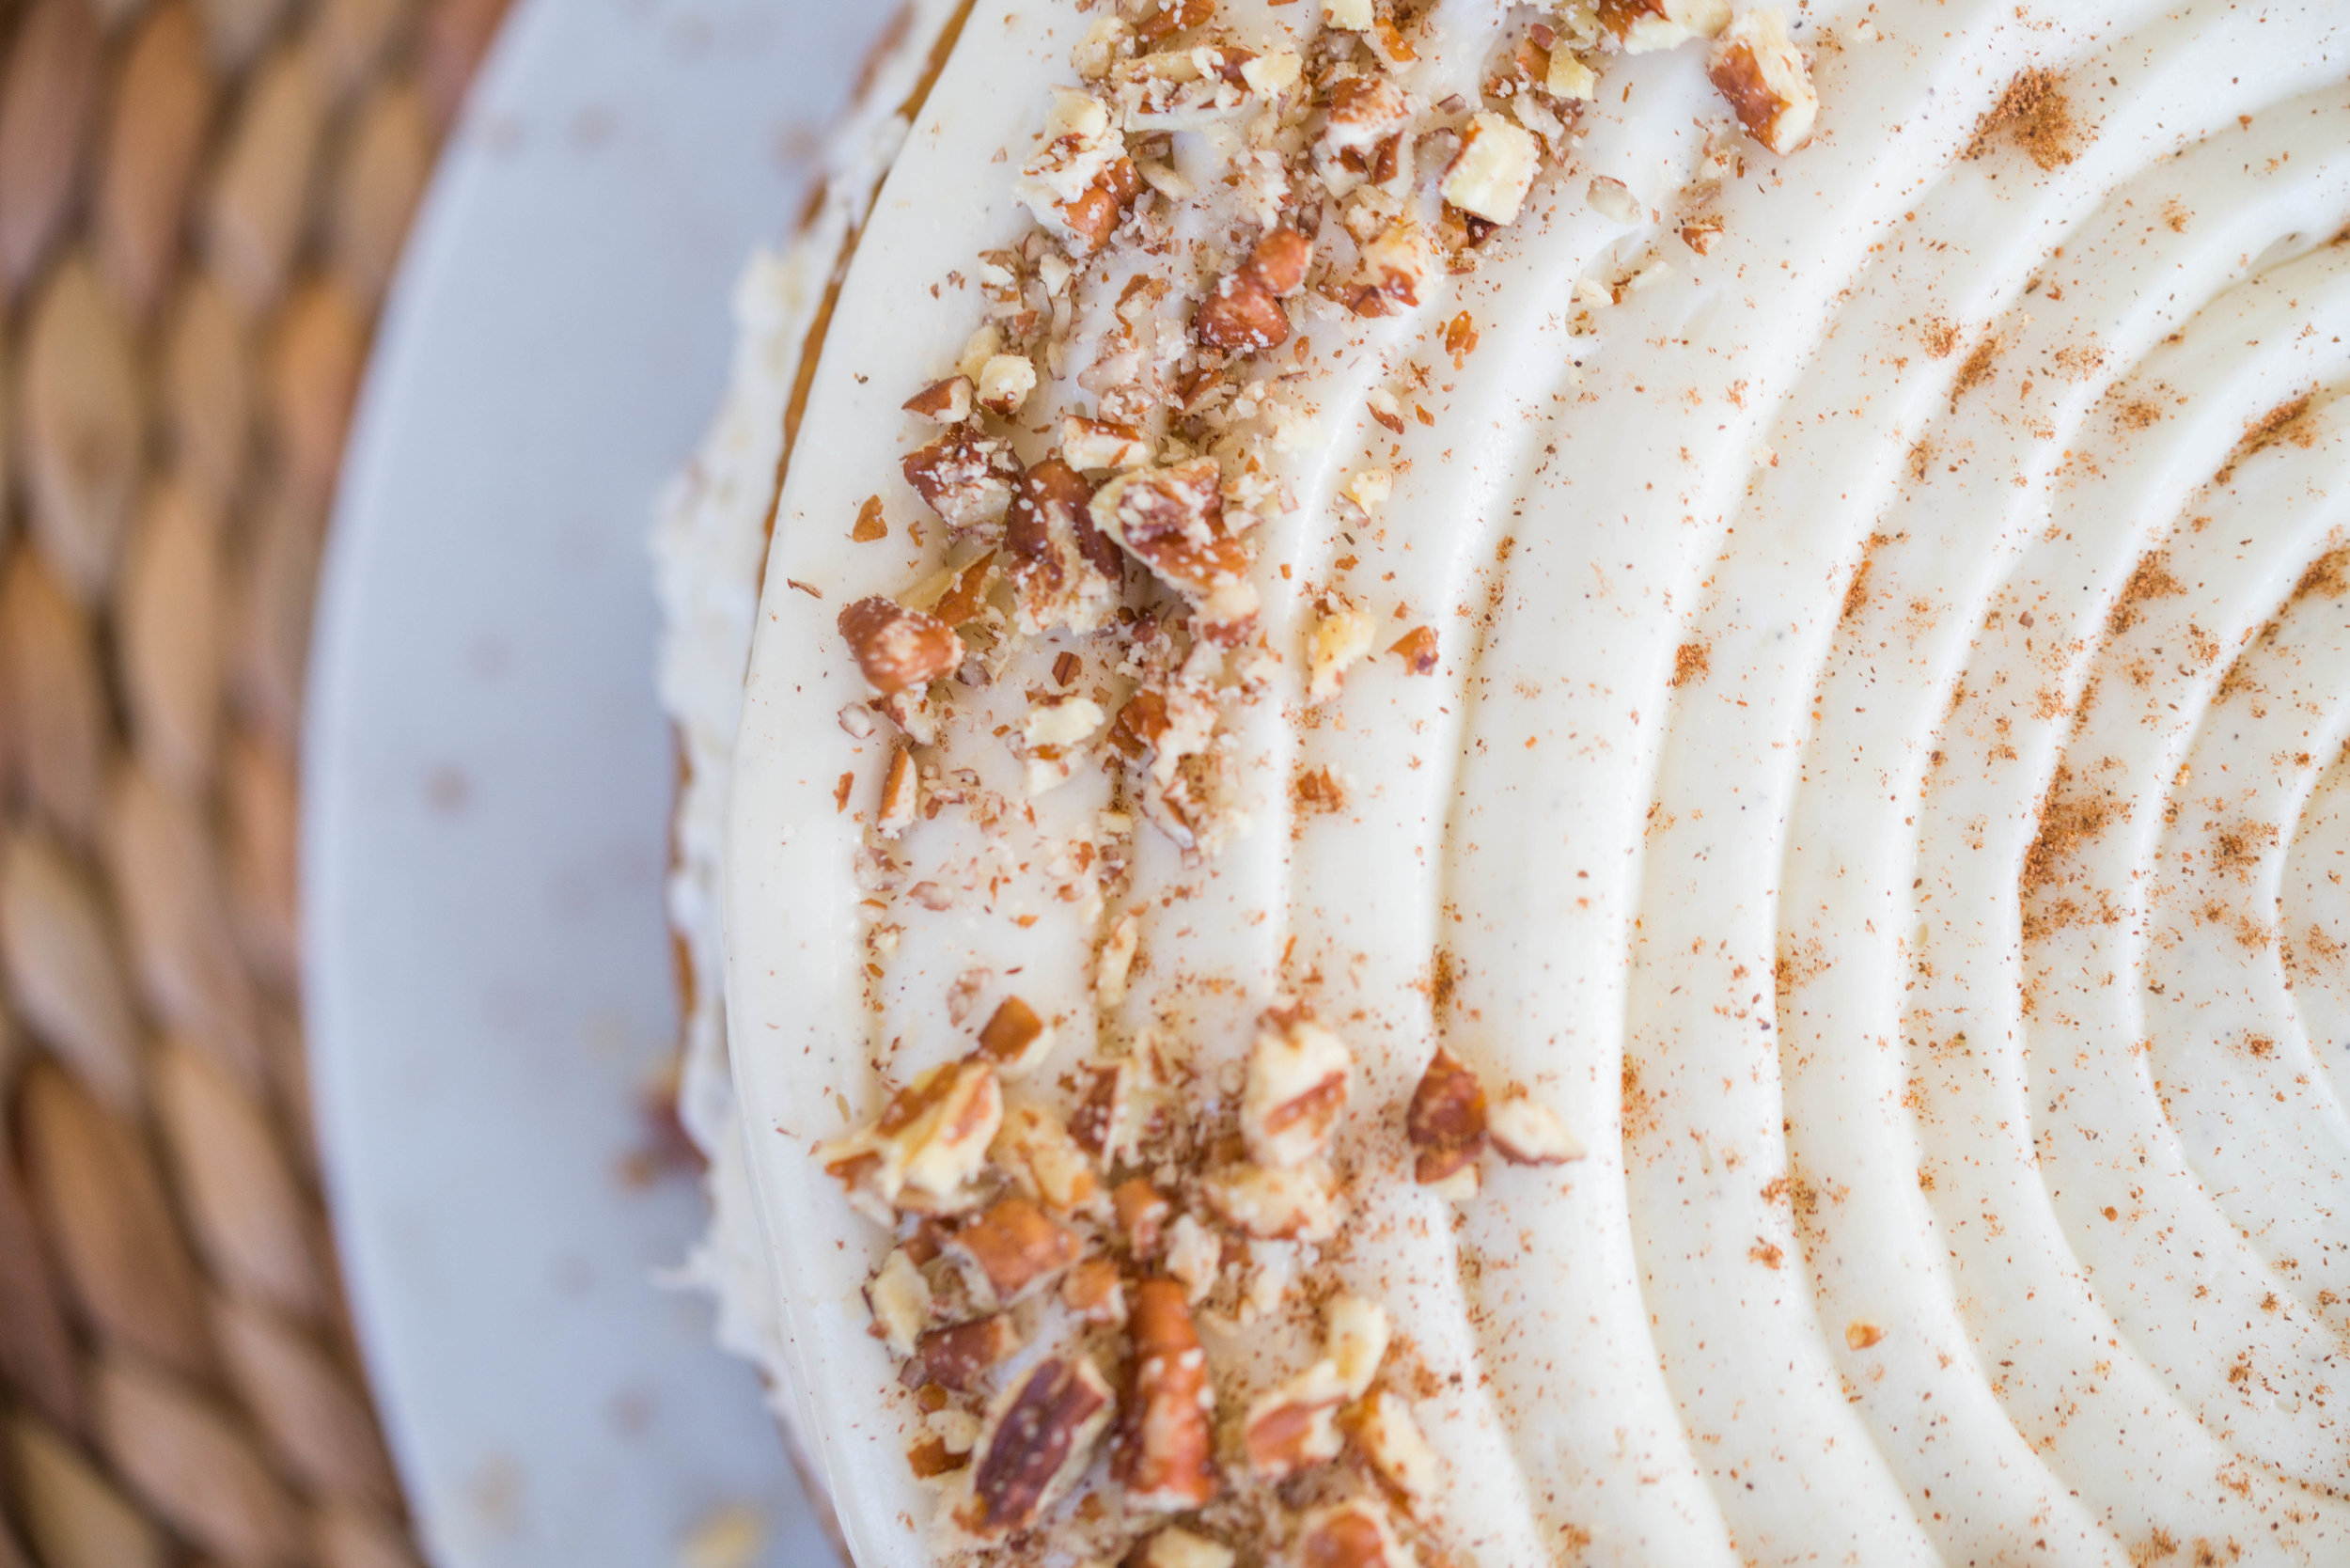 MIXED-AND-MEASURED-CARROT-CAKE_DSC_3221.jpg